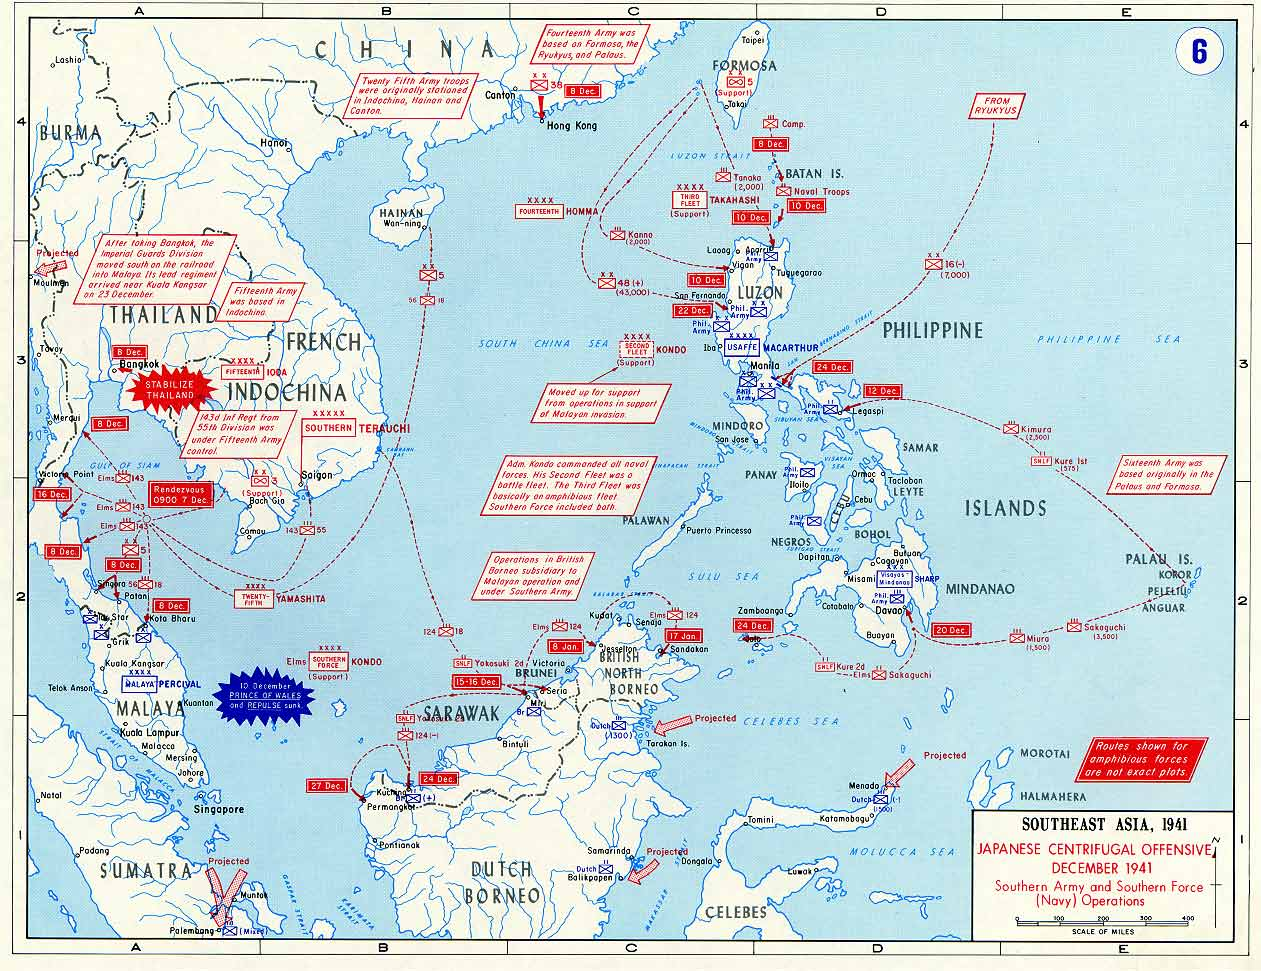 Map Of Southeast Asia And South Pacific.File Pacific War Southeast Asia 1941 Map Jpg Wikimedia Commons